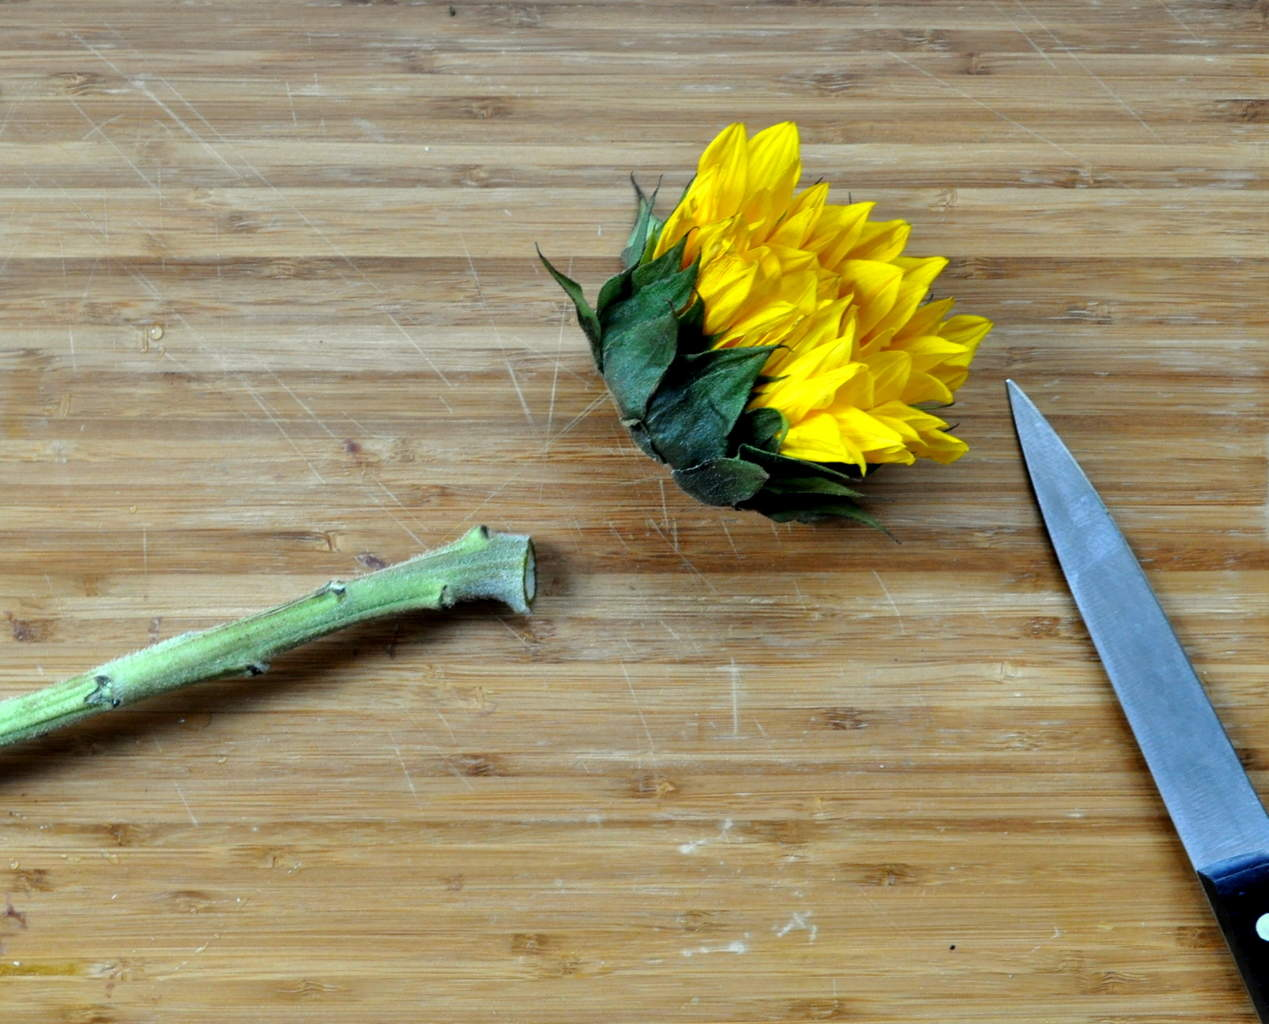 how to dry flowers, best way to dry flowers, oven dried flowers